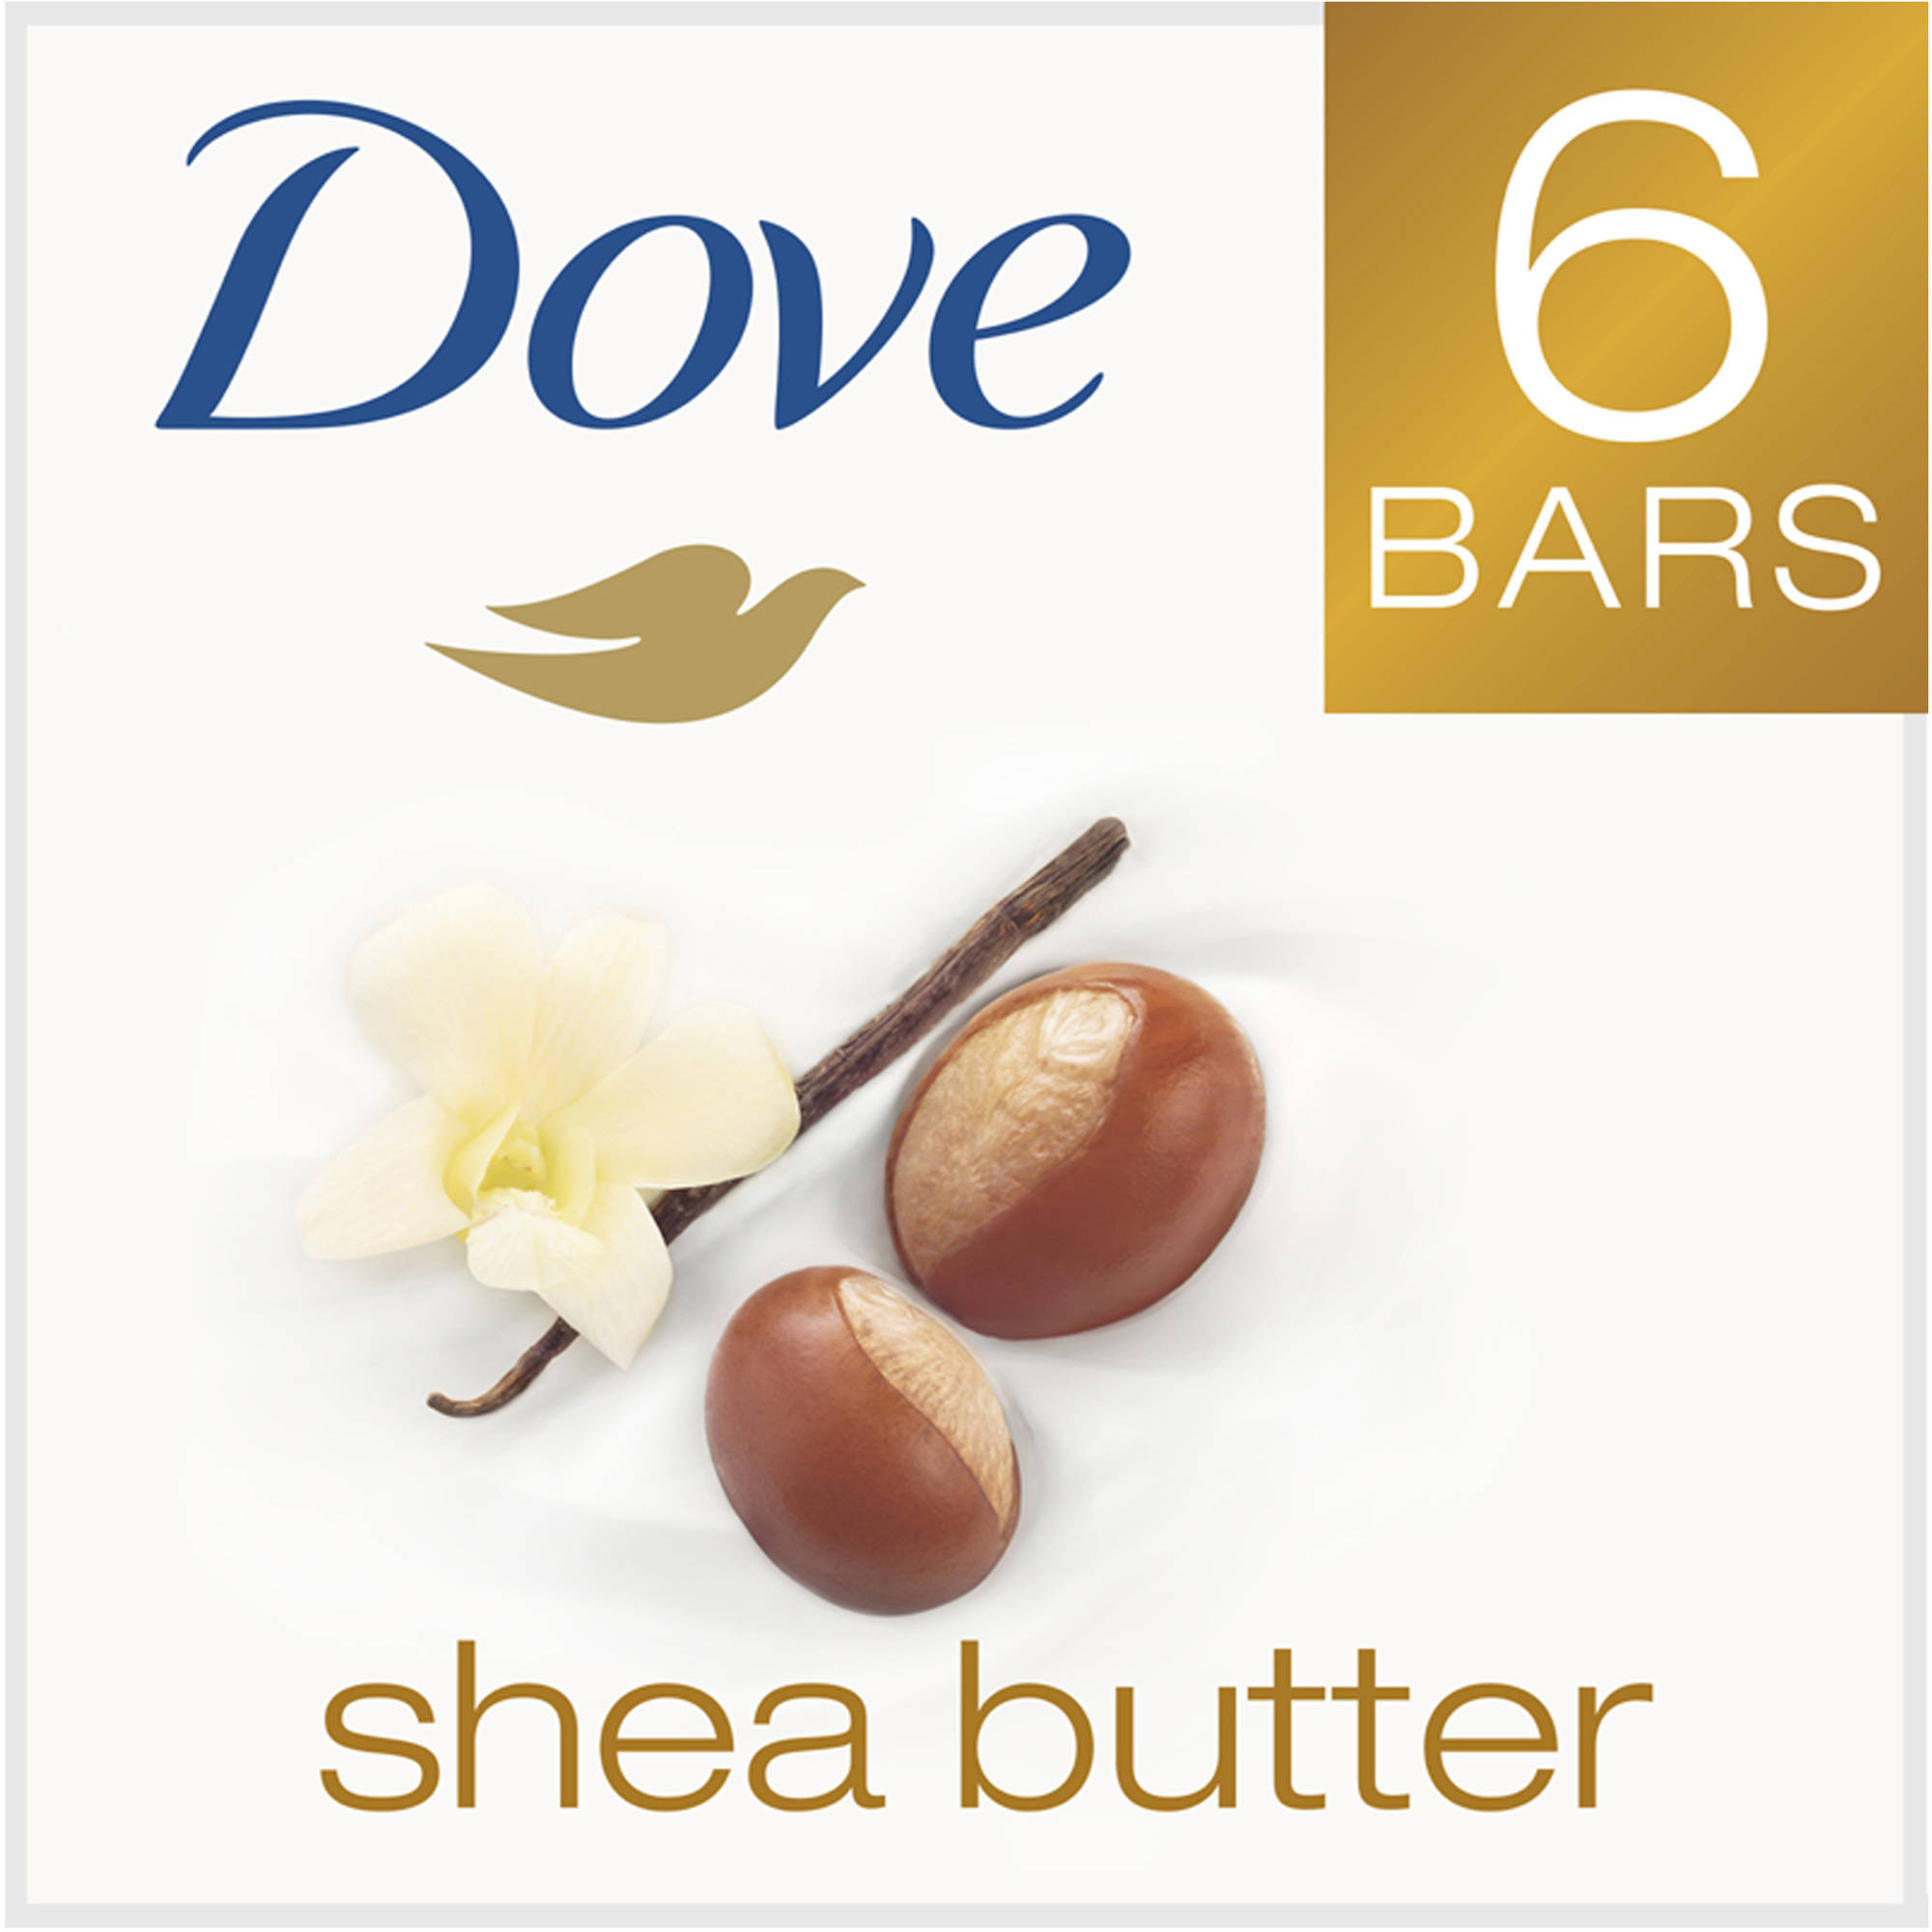 Dove Purely Pampering Shea Butter Beauty Bar, 4 oz, 6 Bar